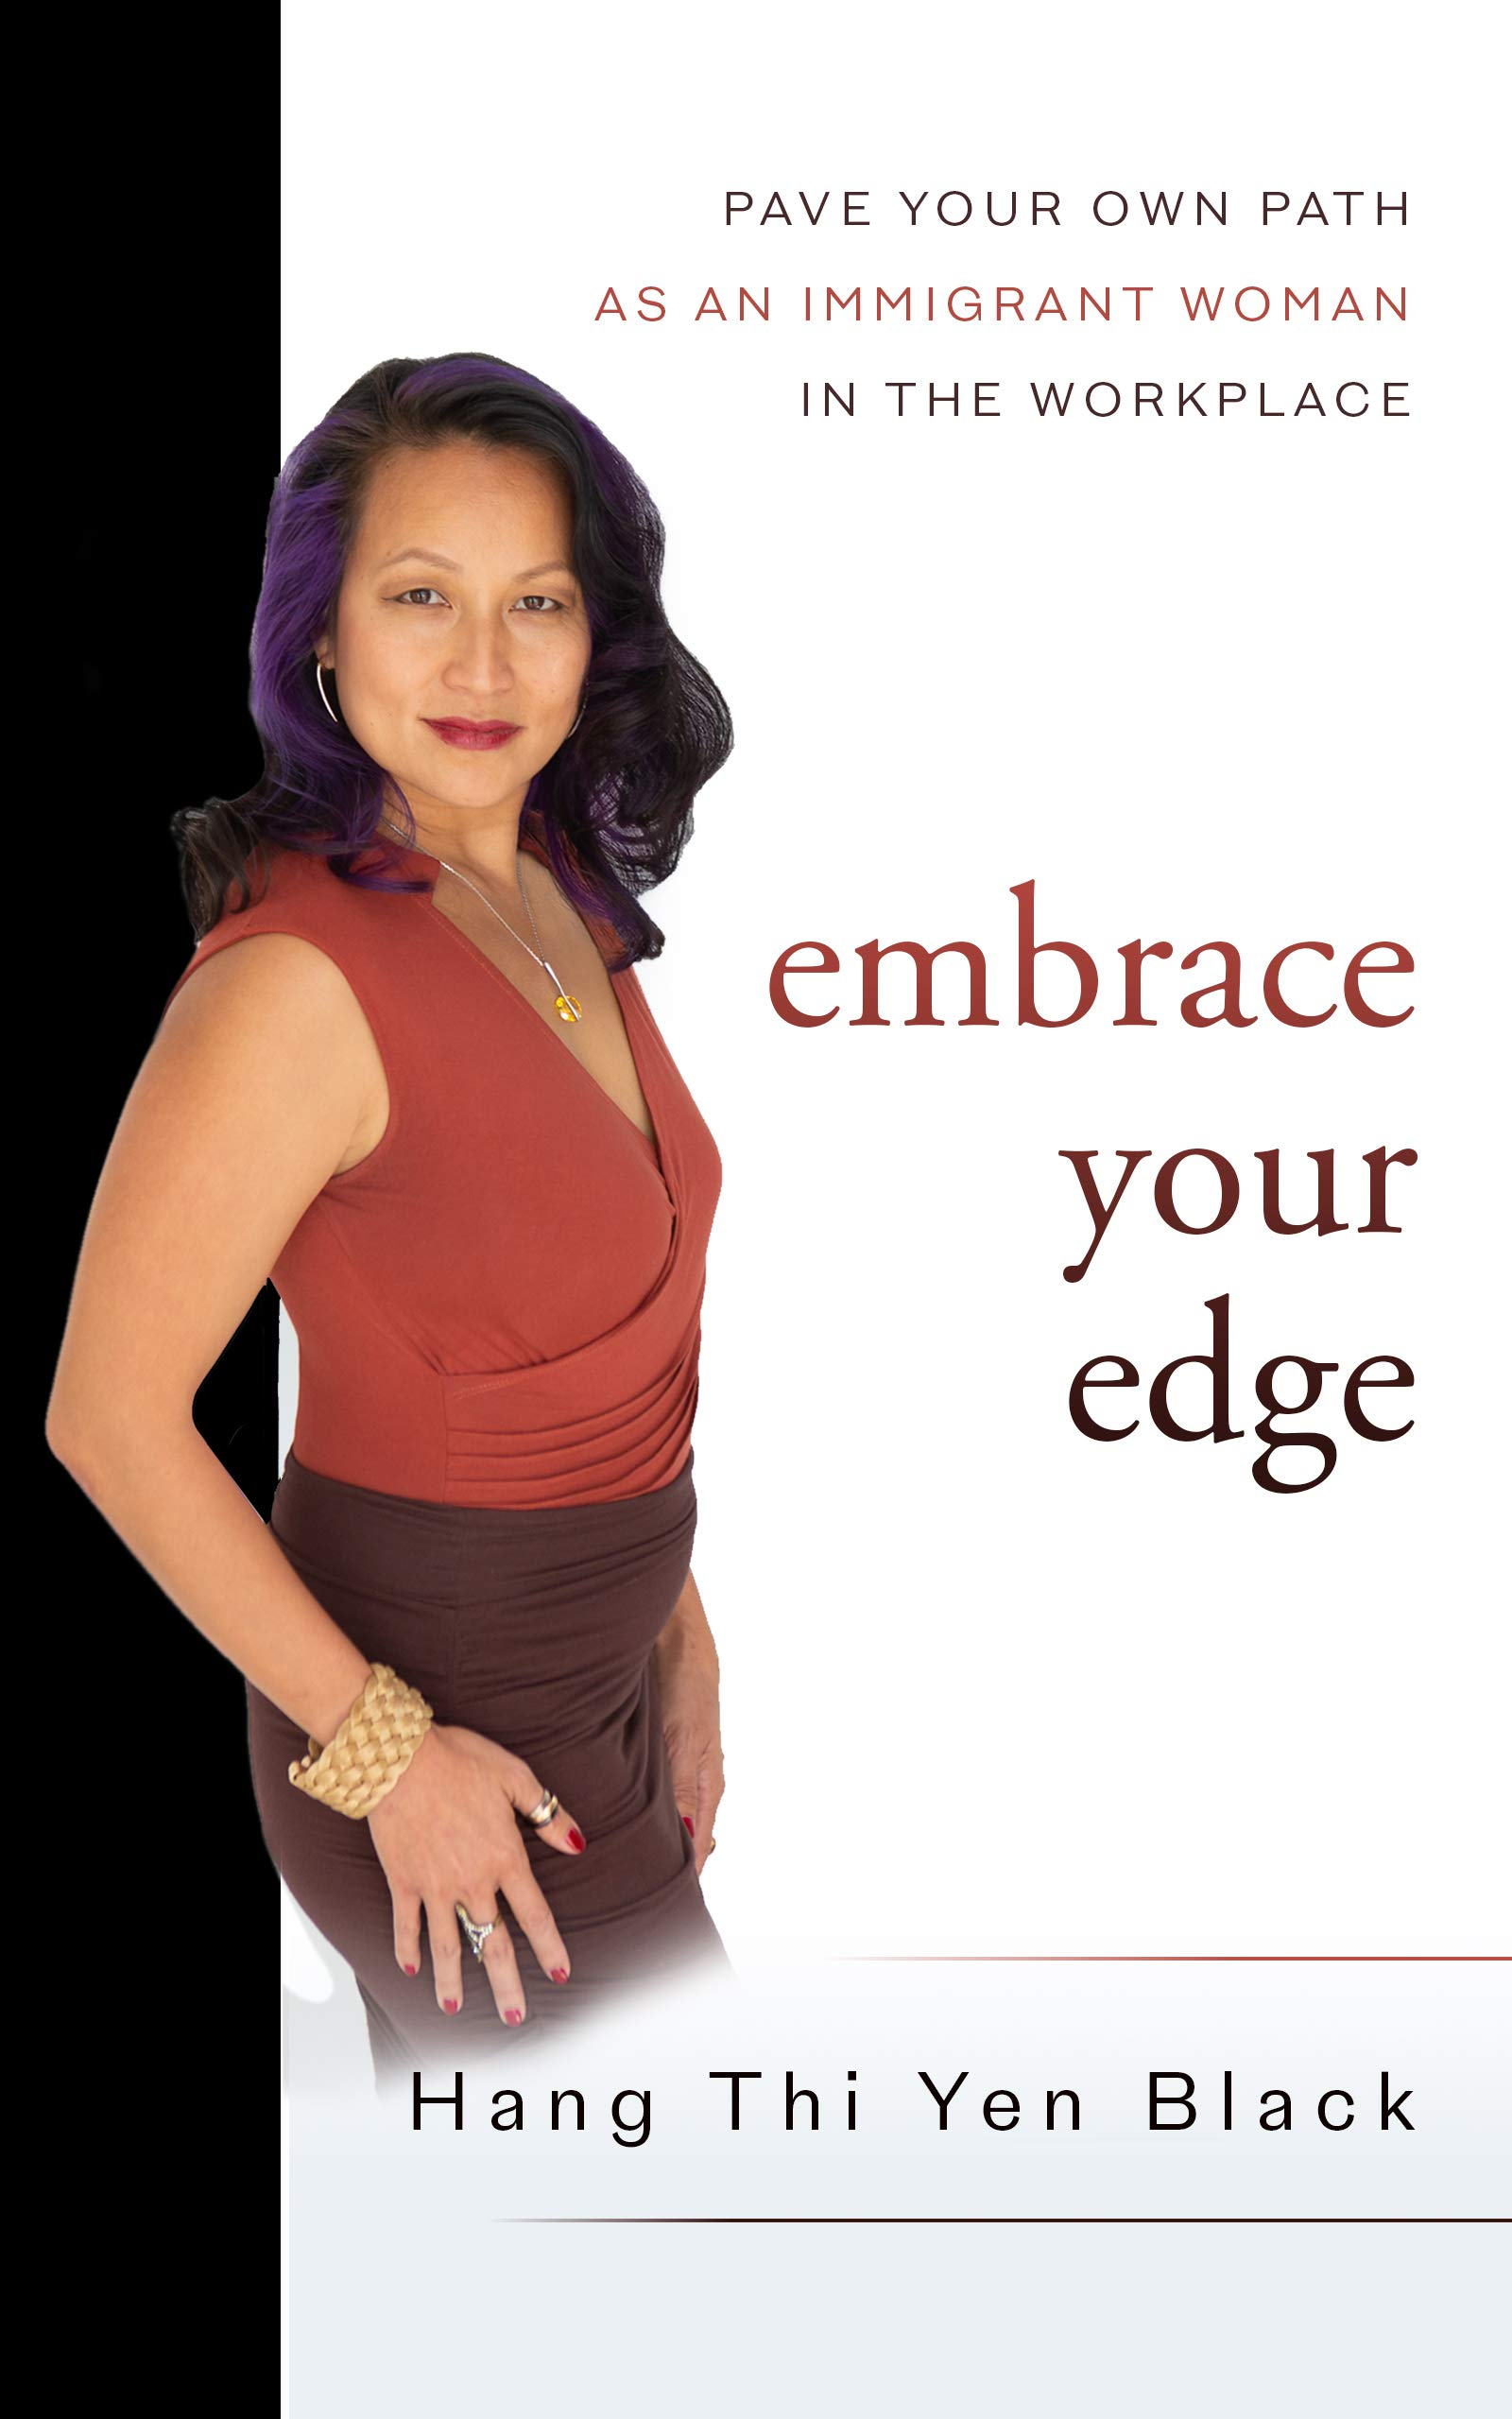 Embrace Your Edge: Pave Your Own Path as an Immigrant Woman in the Workplace